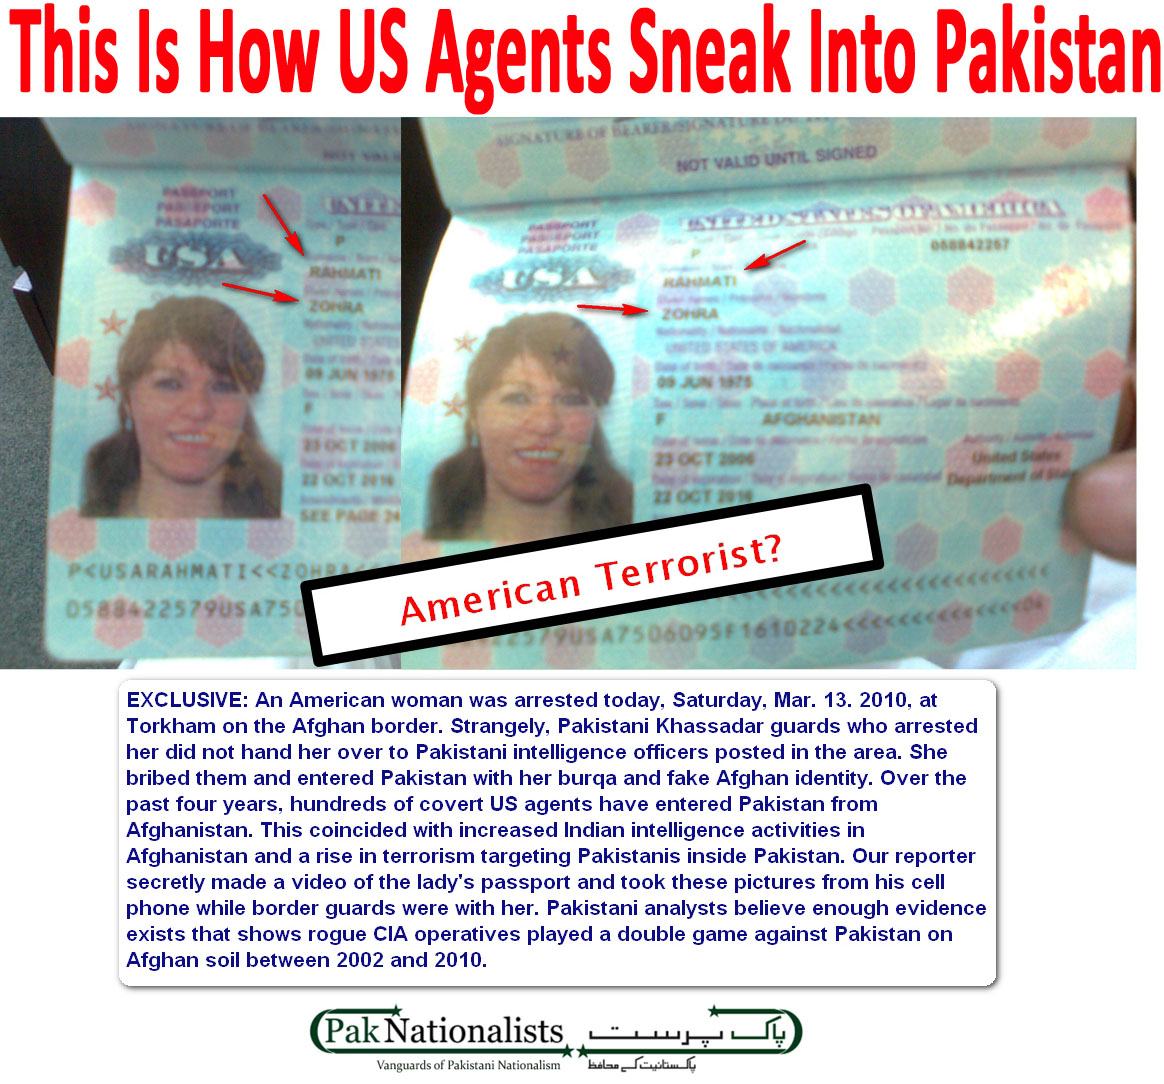 Into Pakistan to Spies And